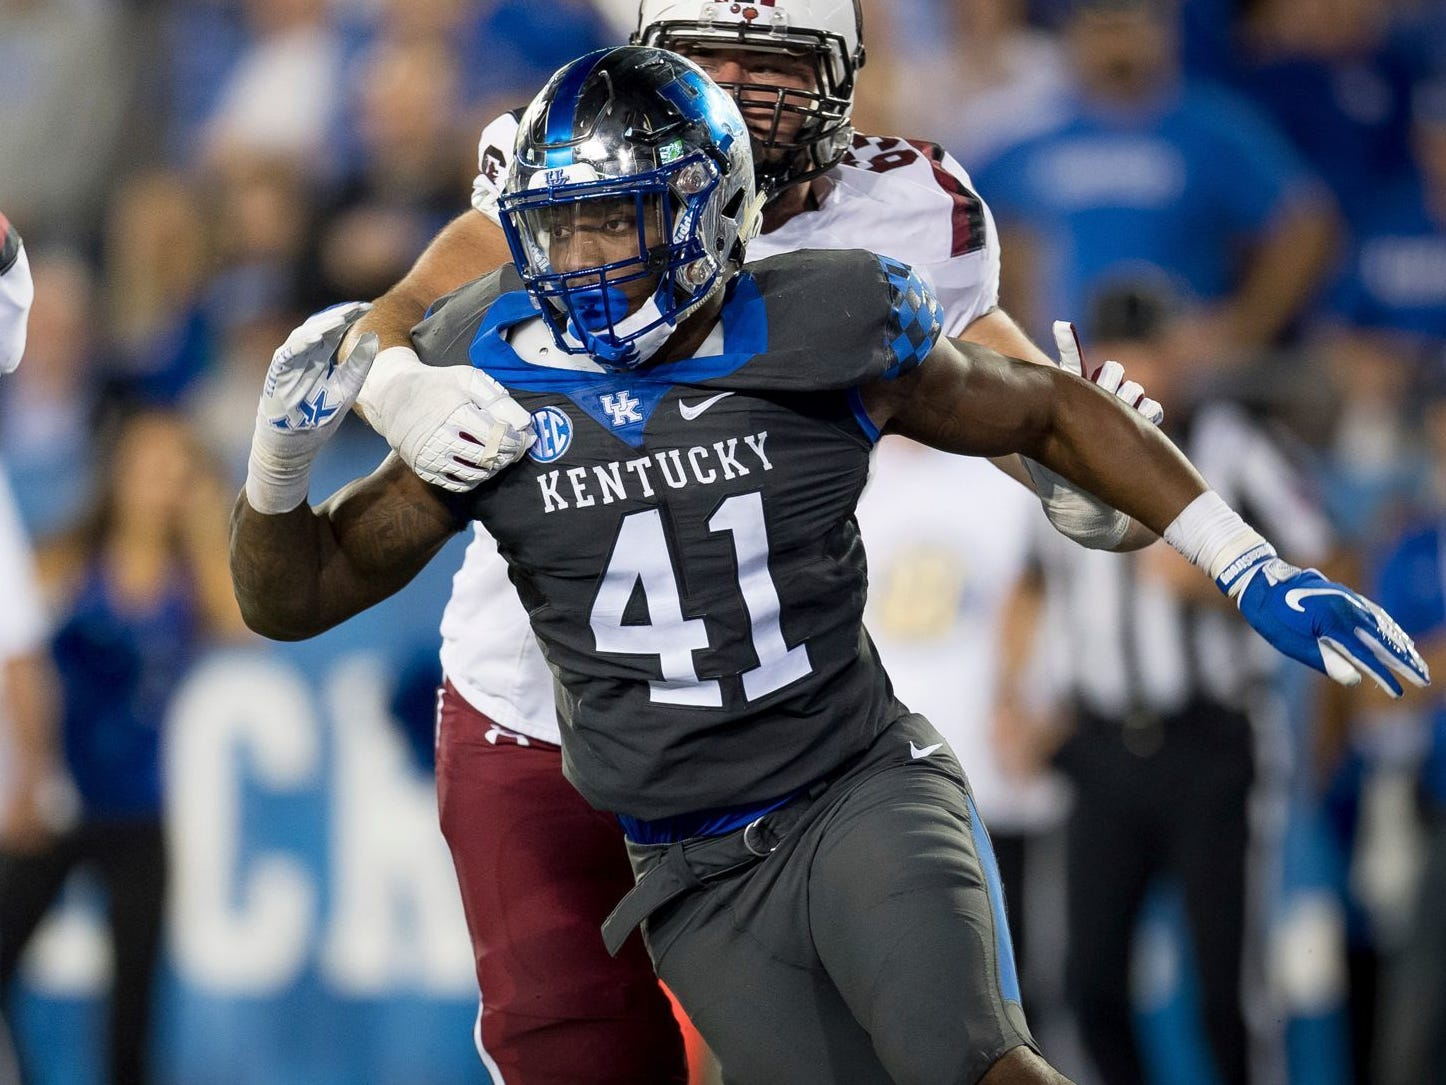 OLB Josh Allen, Kentucky: Allen seems like a good bet to go in the top five after a 17-sack season, but if he slides to eight he'll be tough to pass on. He's more outside linebacker than defensive end, but would give a big boost to the Lions pass rush.